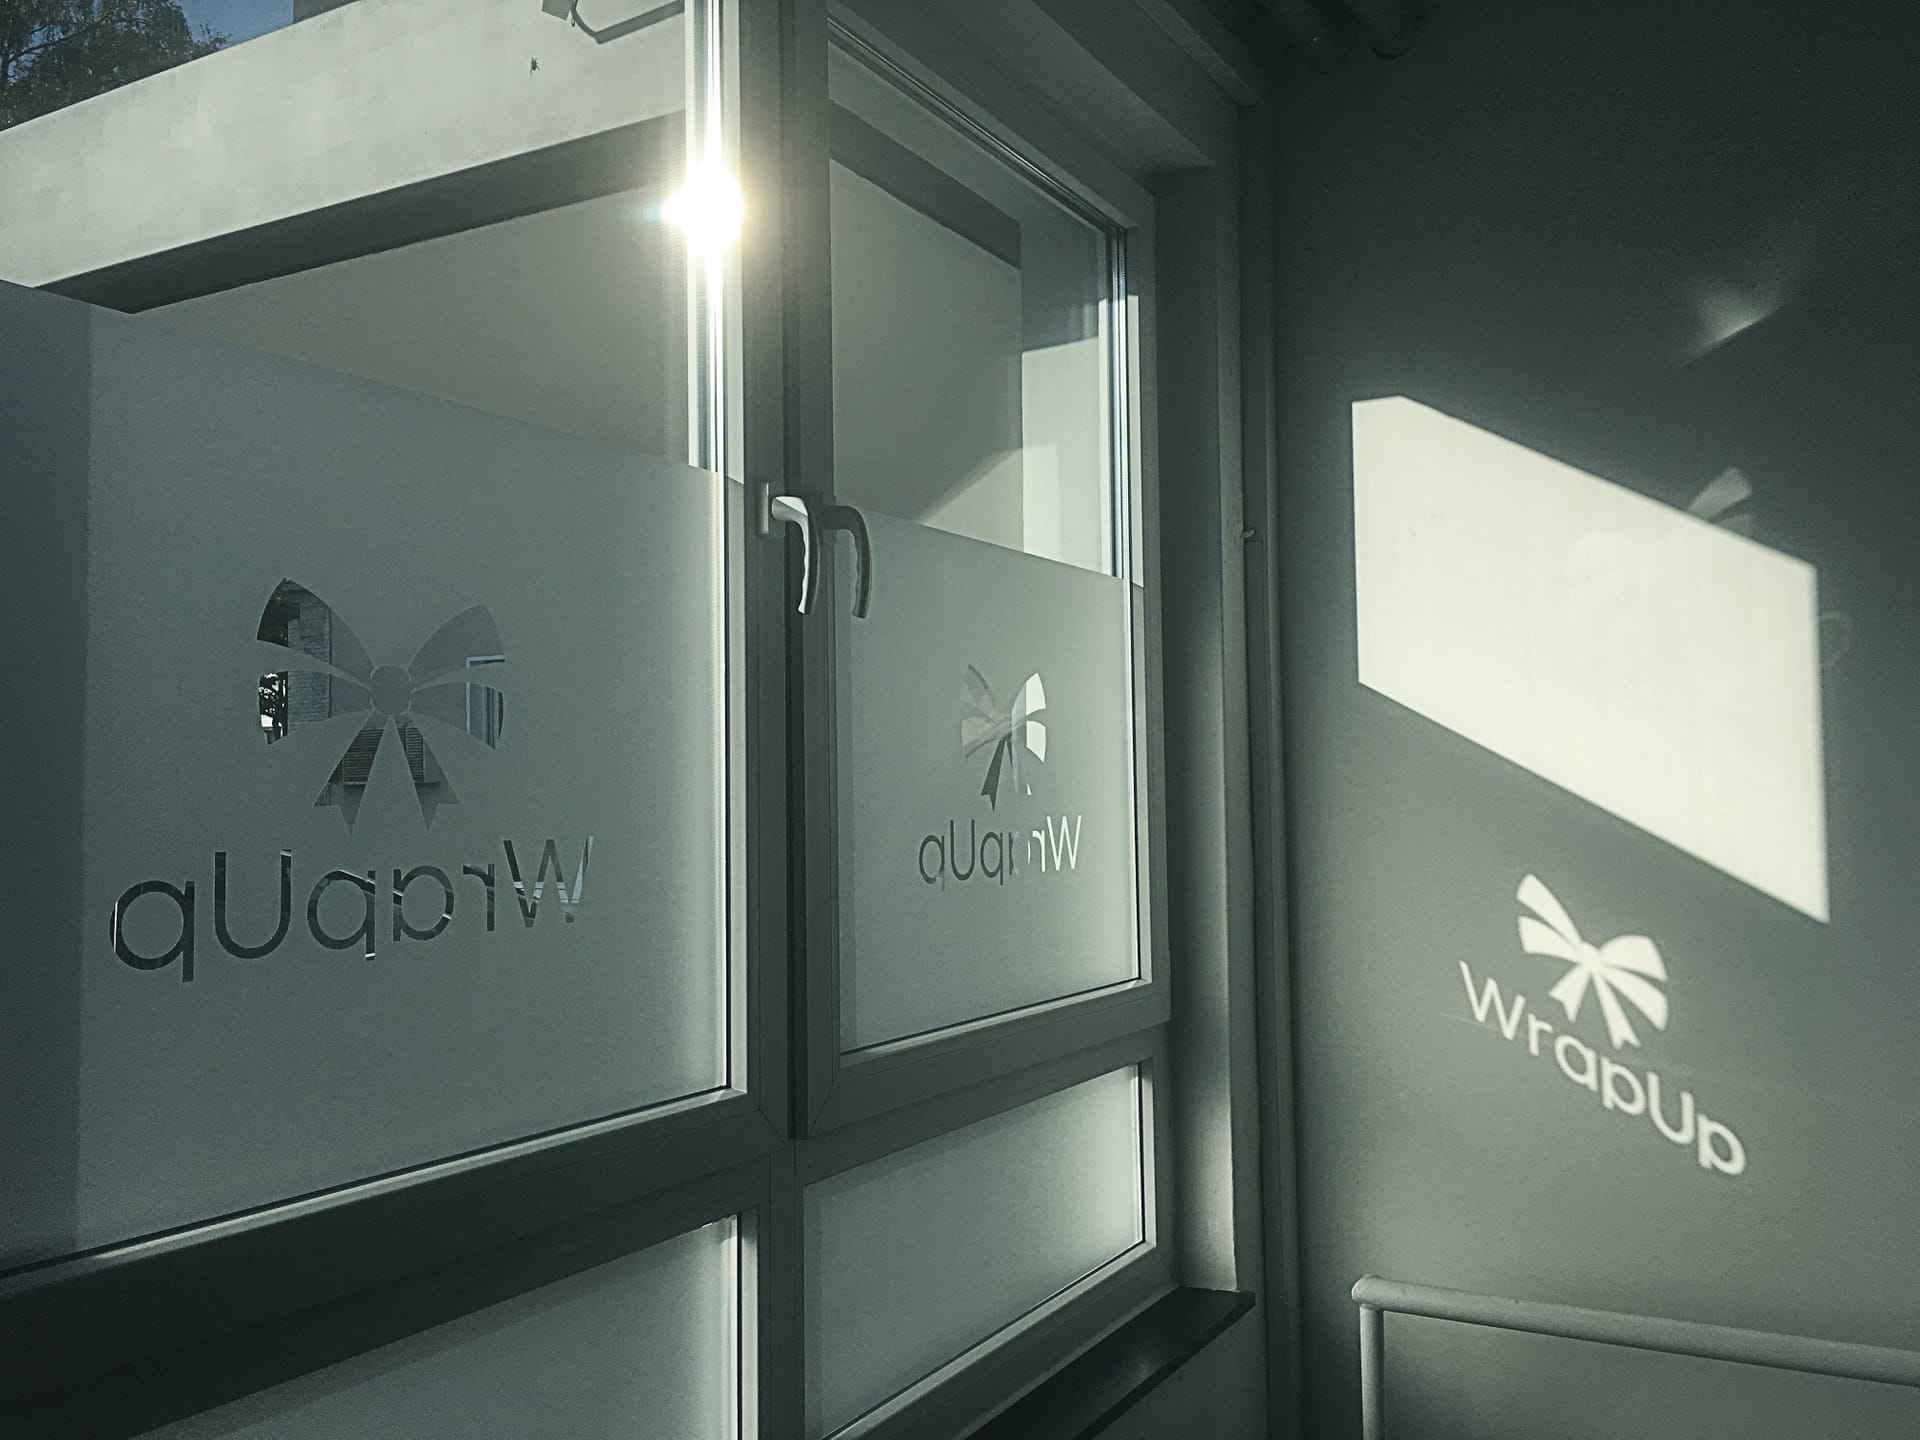 Window privacy protection with stamped out company logo, privacy protection foils and glass decoration foils lettering from anplakt